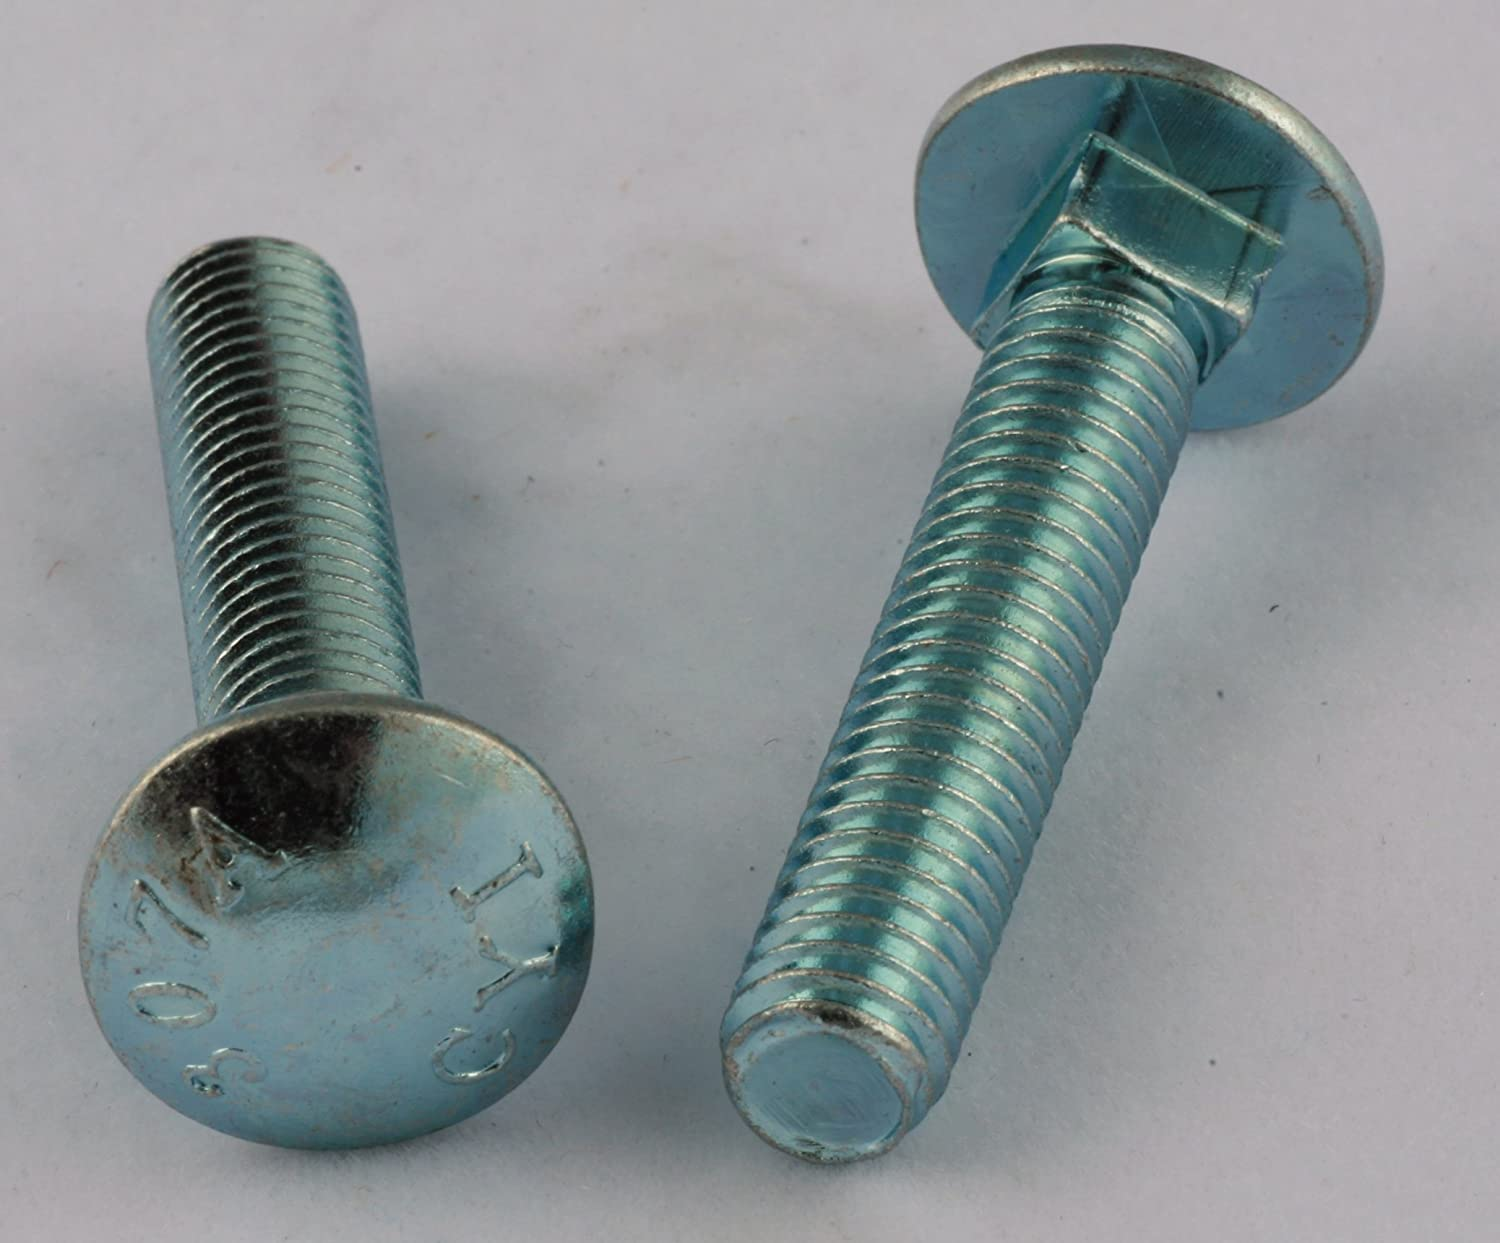 Spring Loaded Hollow Wall Anchor 100 Toggle Wing Nut 5//16-18 Zinc Plated